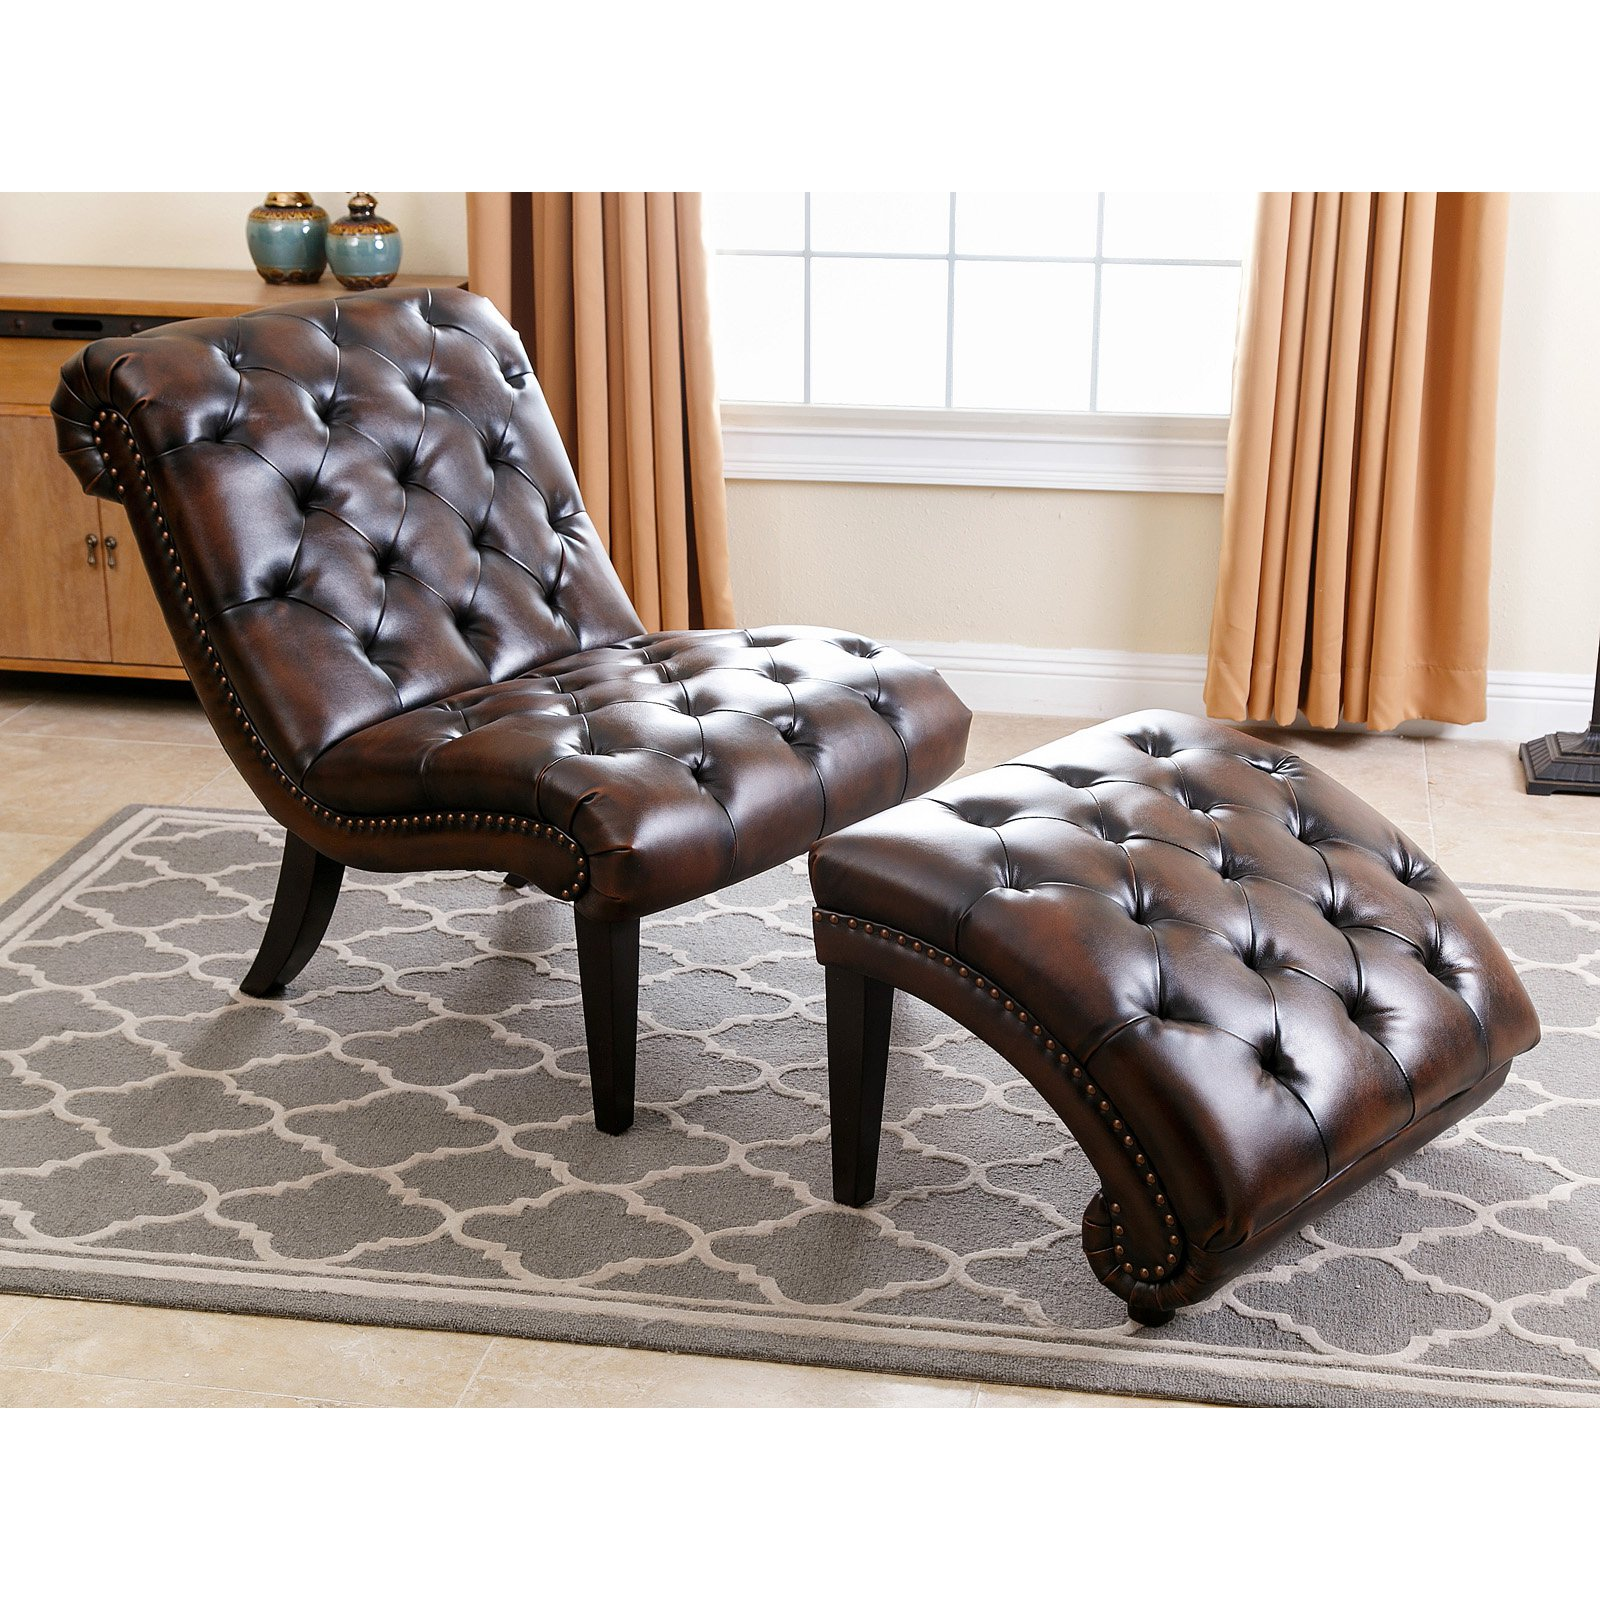 Abbyson Living Patrick Tufted Leather Chaise Lounge With Ottoman, Brown